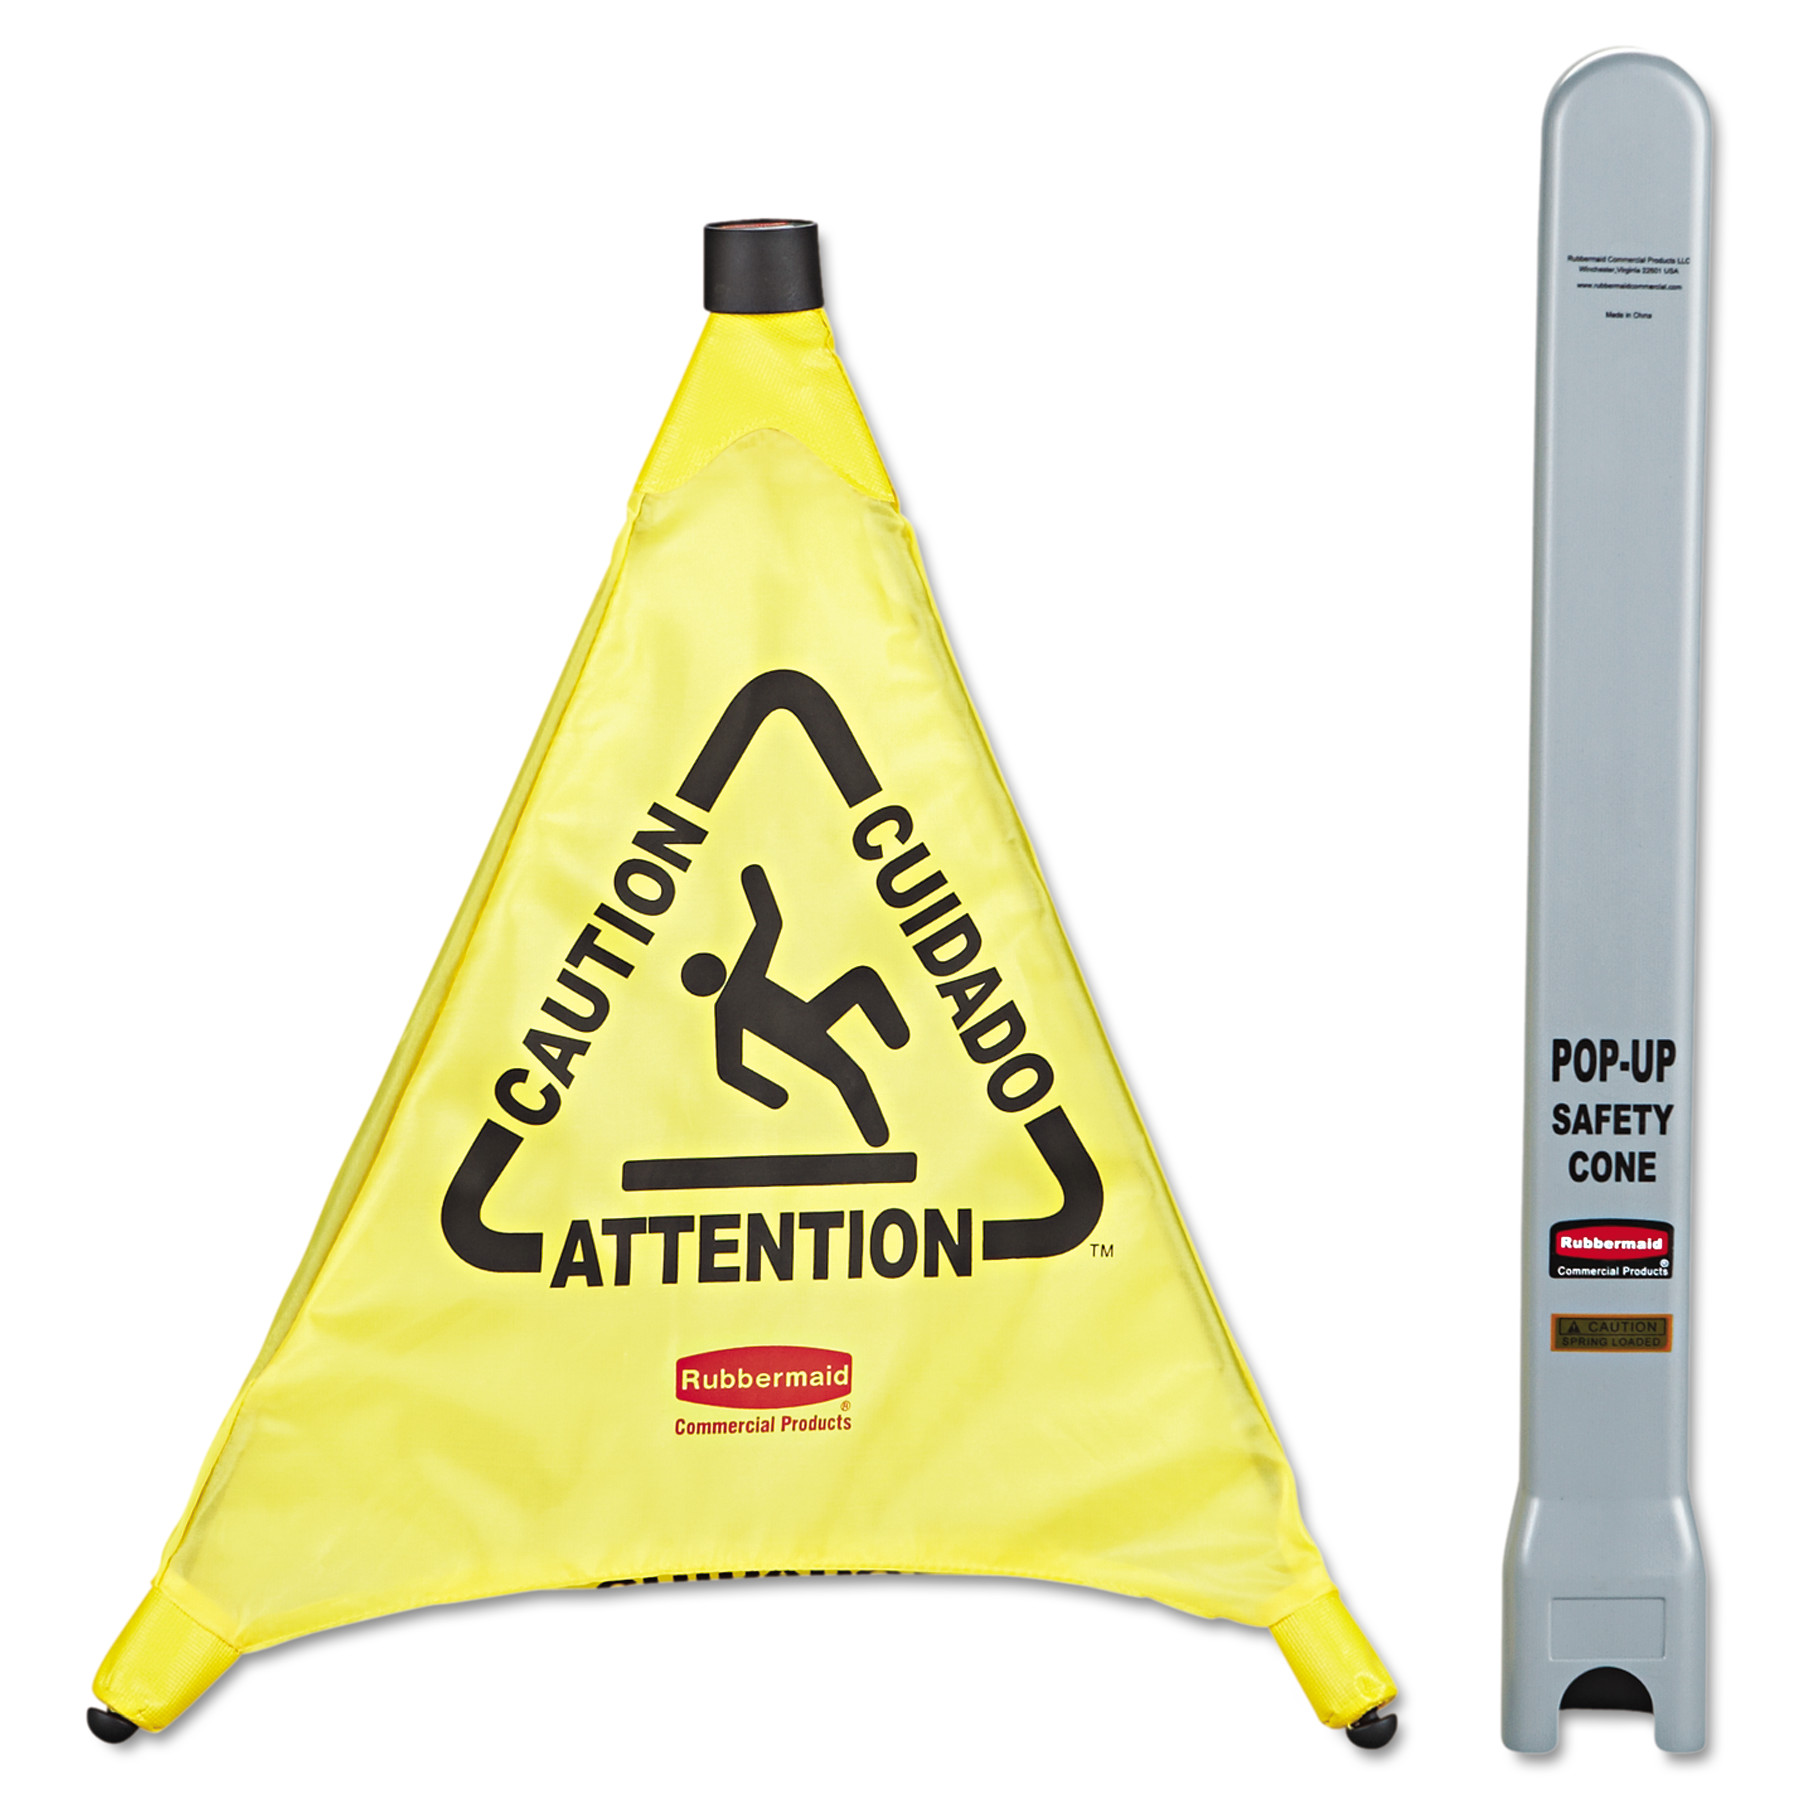 "Rubbermaid Commercial Multilingual ""Caution"" Pop-Up Safety Cone, 3-Sided, Fabric, 21 x 21 x 20, Yellow"